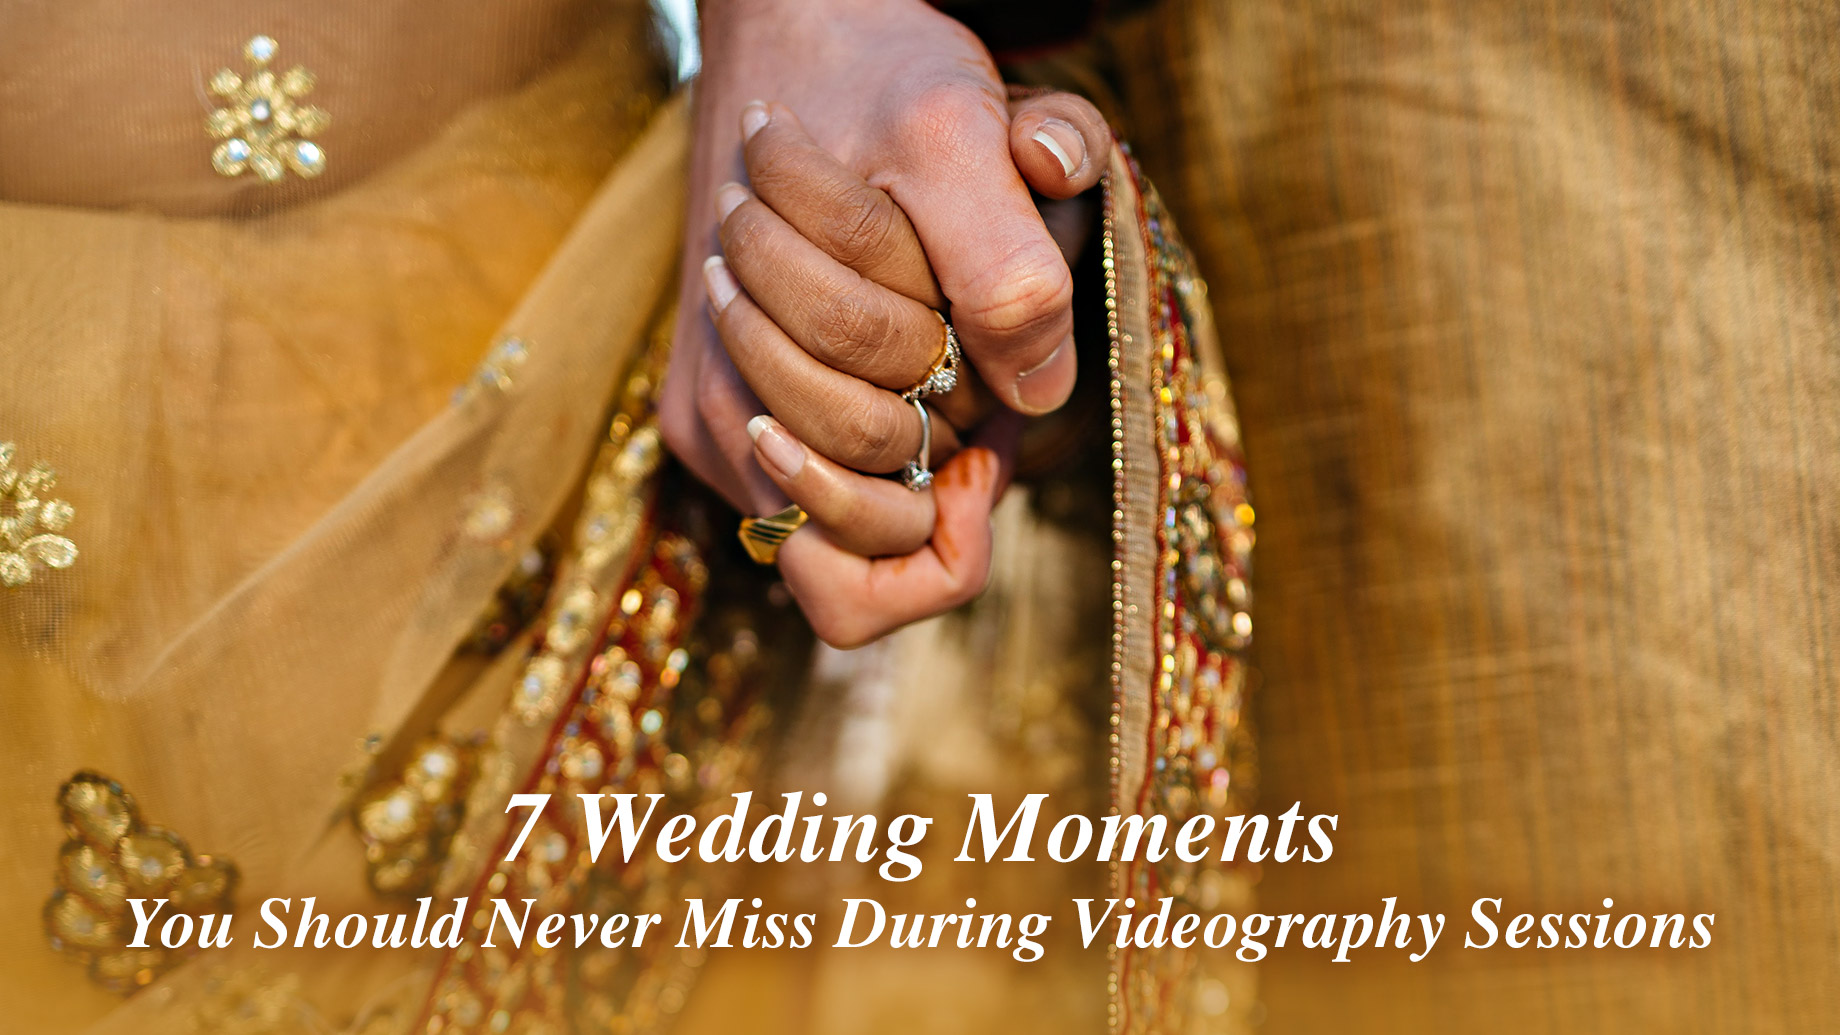 7 Wedding Moments You Should Never Miss During Videography Sessions